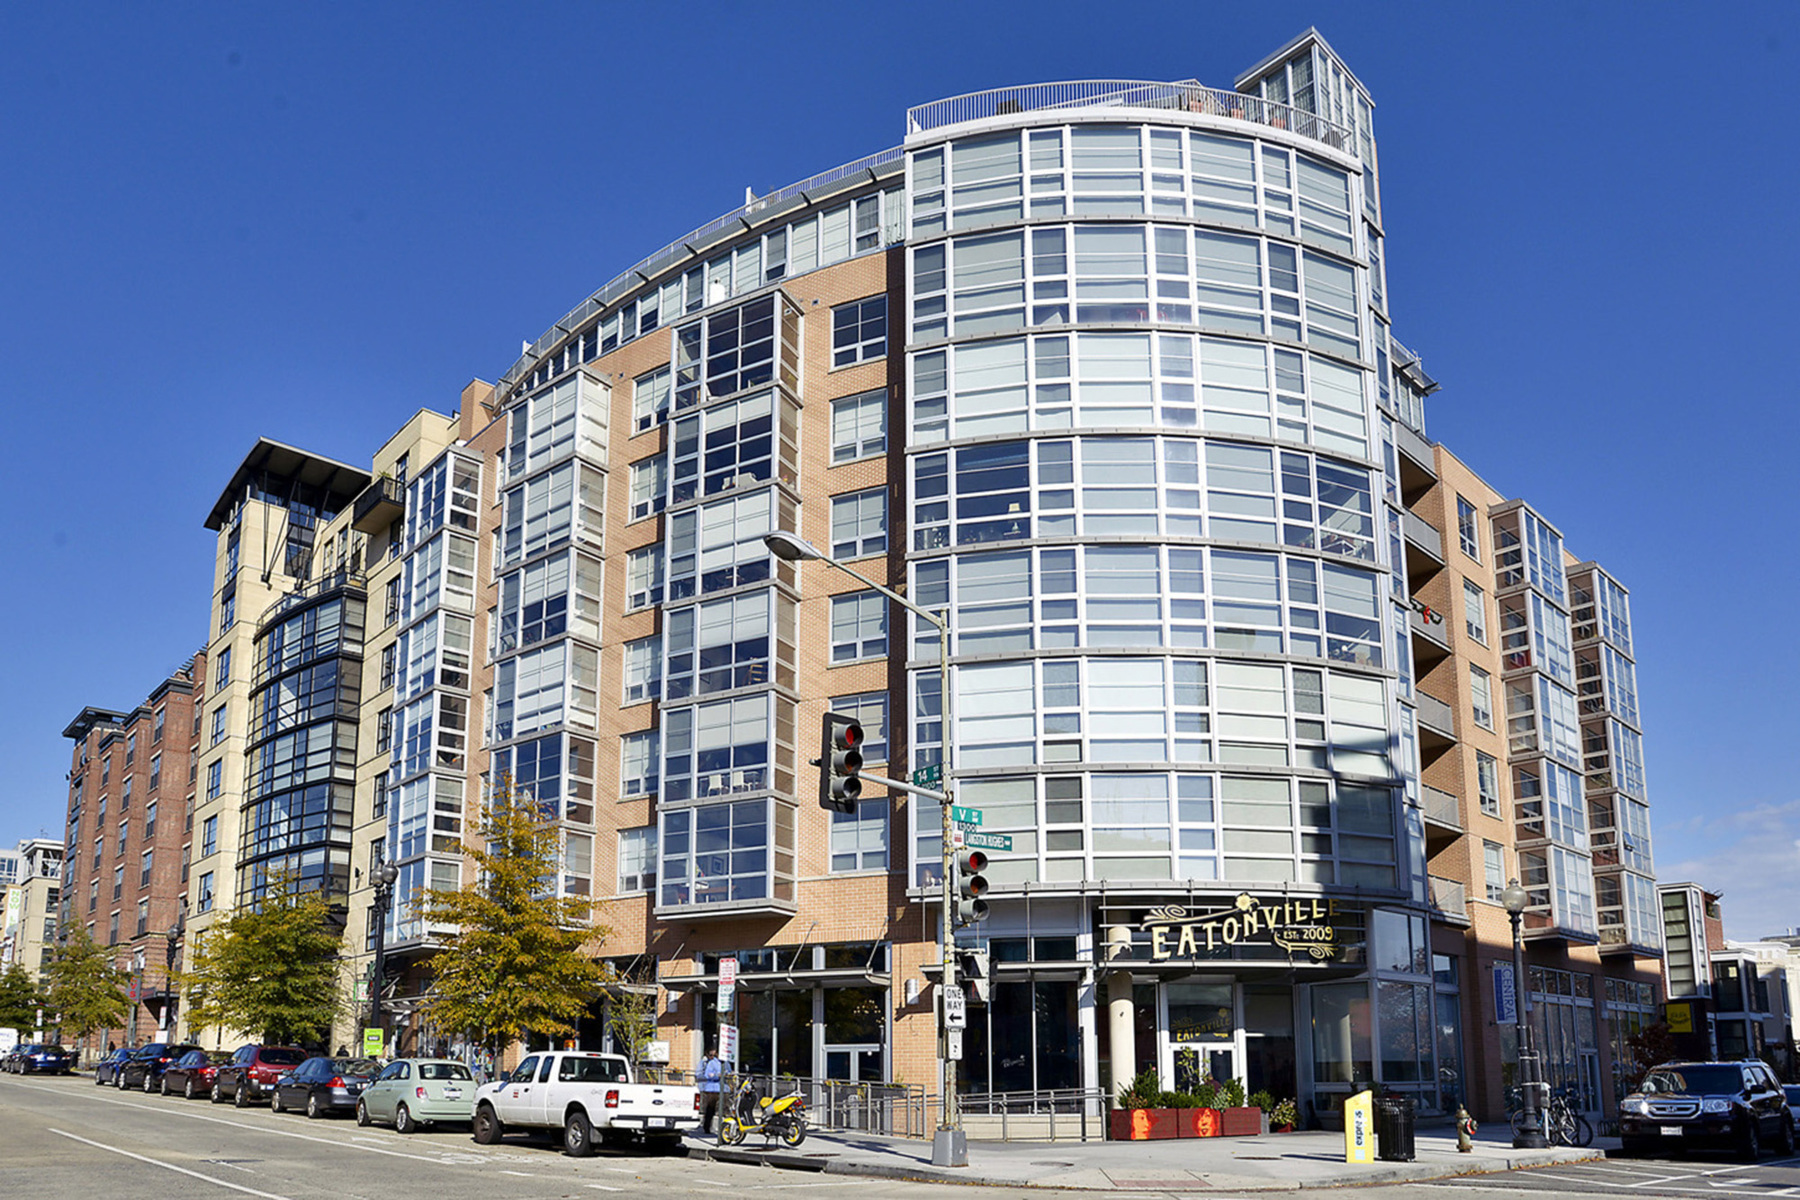 Condominium for Sale at 2125 14th Street Nw 317, Washington Washington, District Of Columbia, 20009 United States